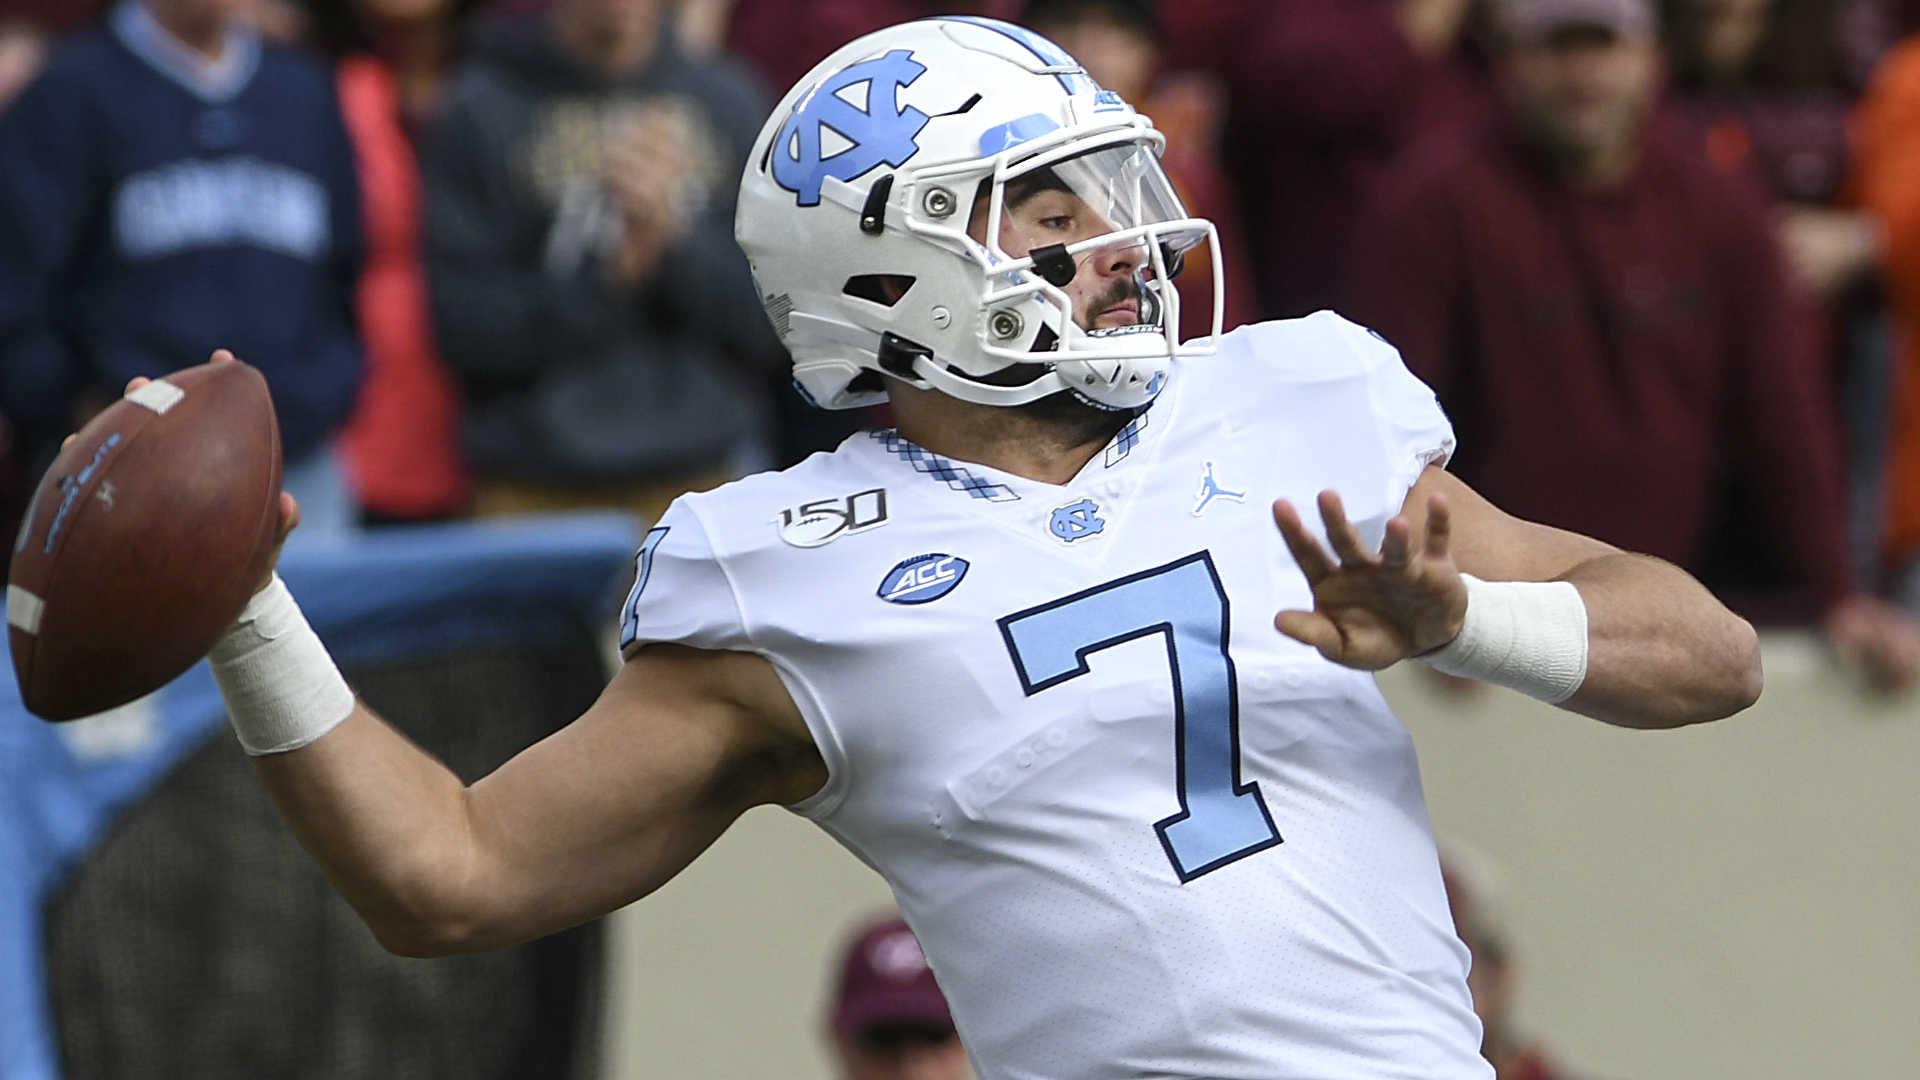 2022 NFL Draft: Sam Howell a first-round QB in waiting at North Carolina 1